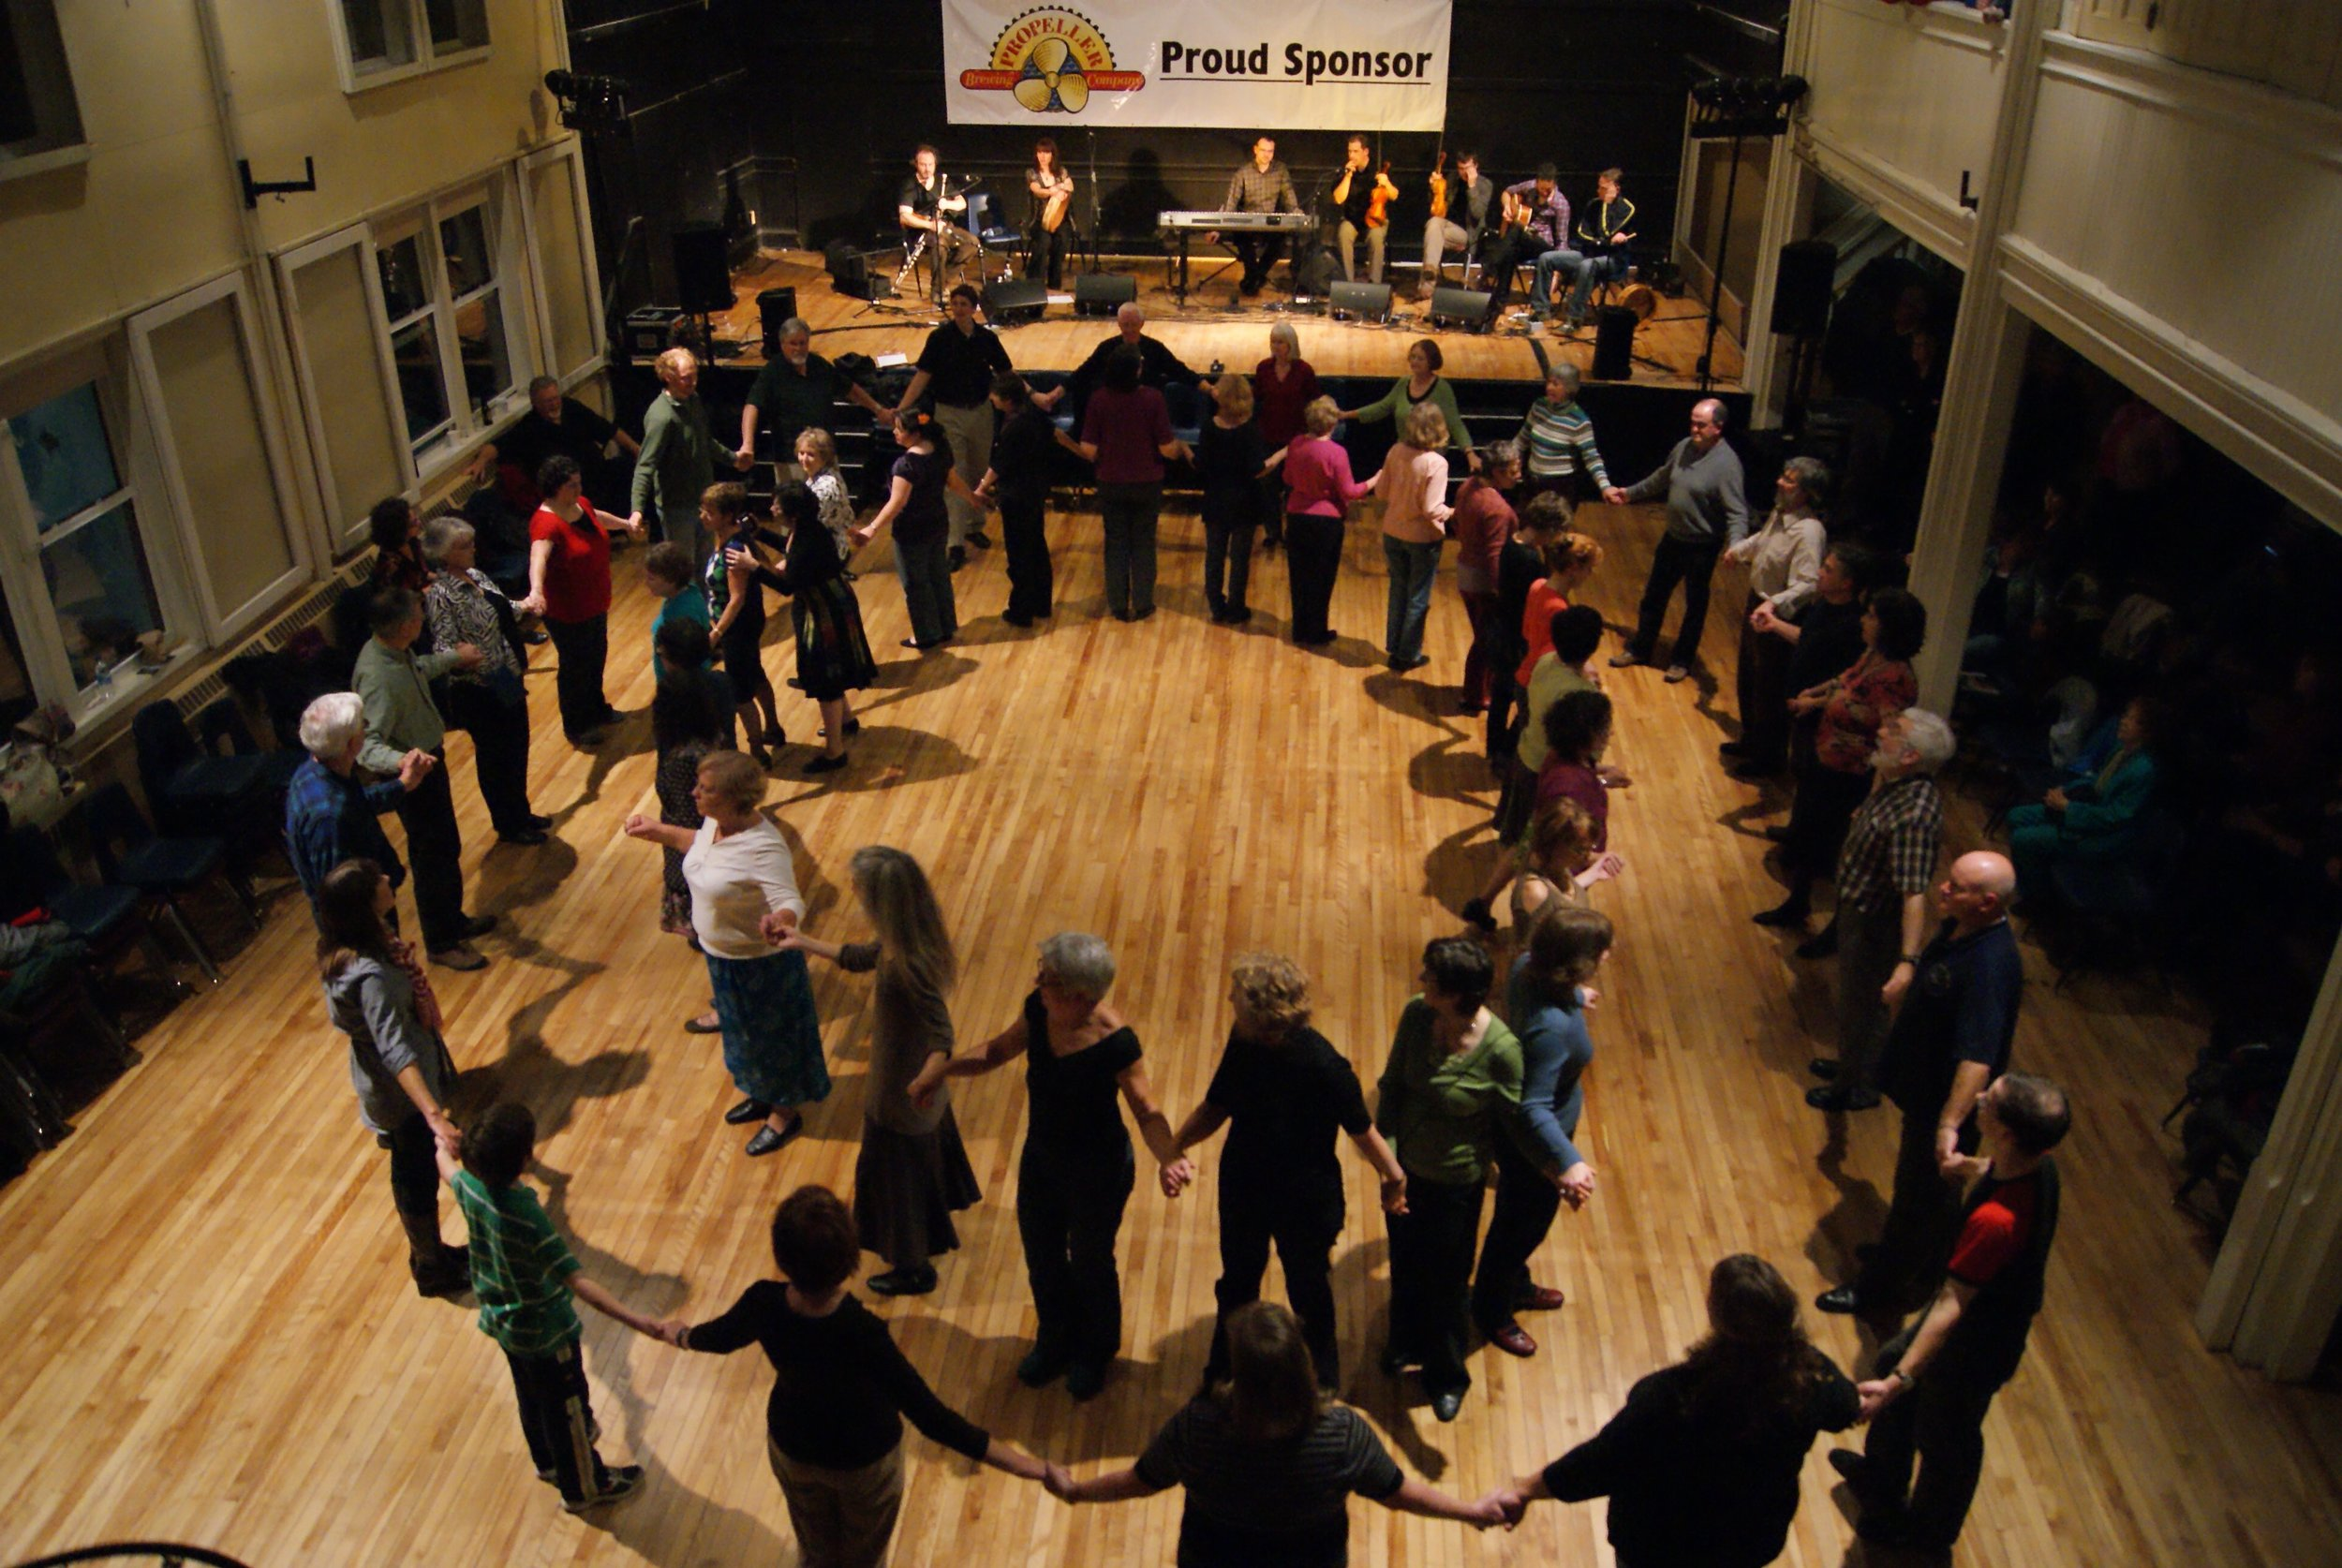 Late Night Ceilidh - Saturday, October 26th at 10pm